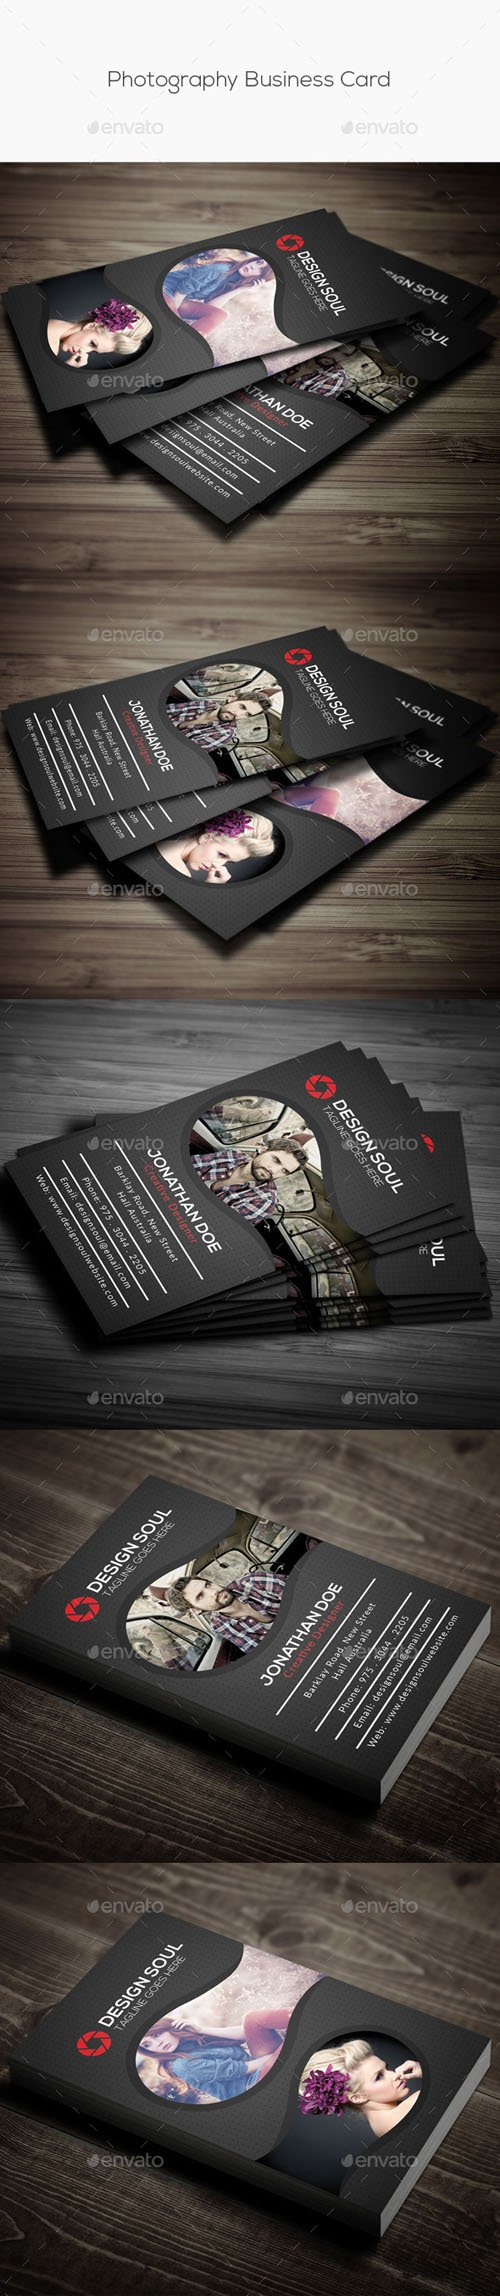 Photography Business Card 14577322